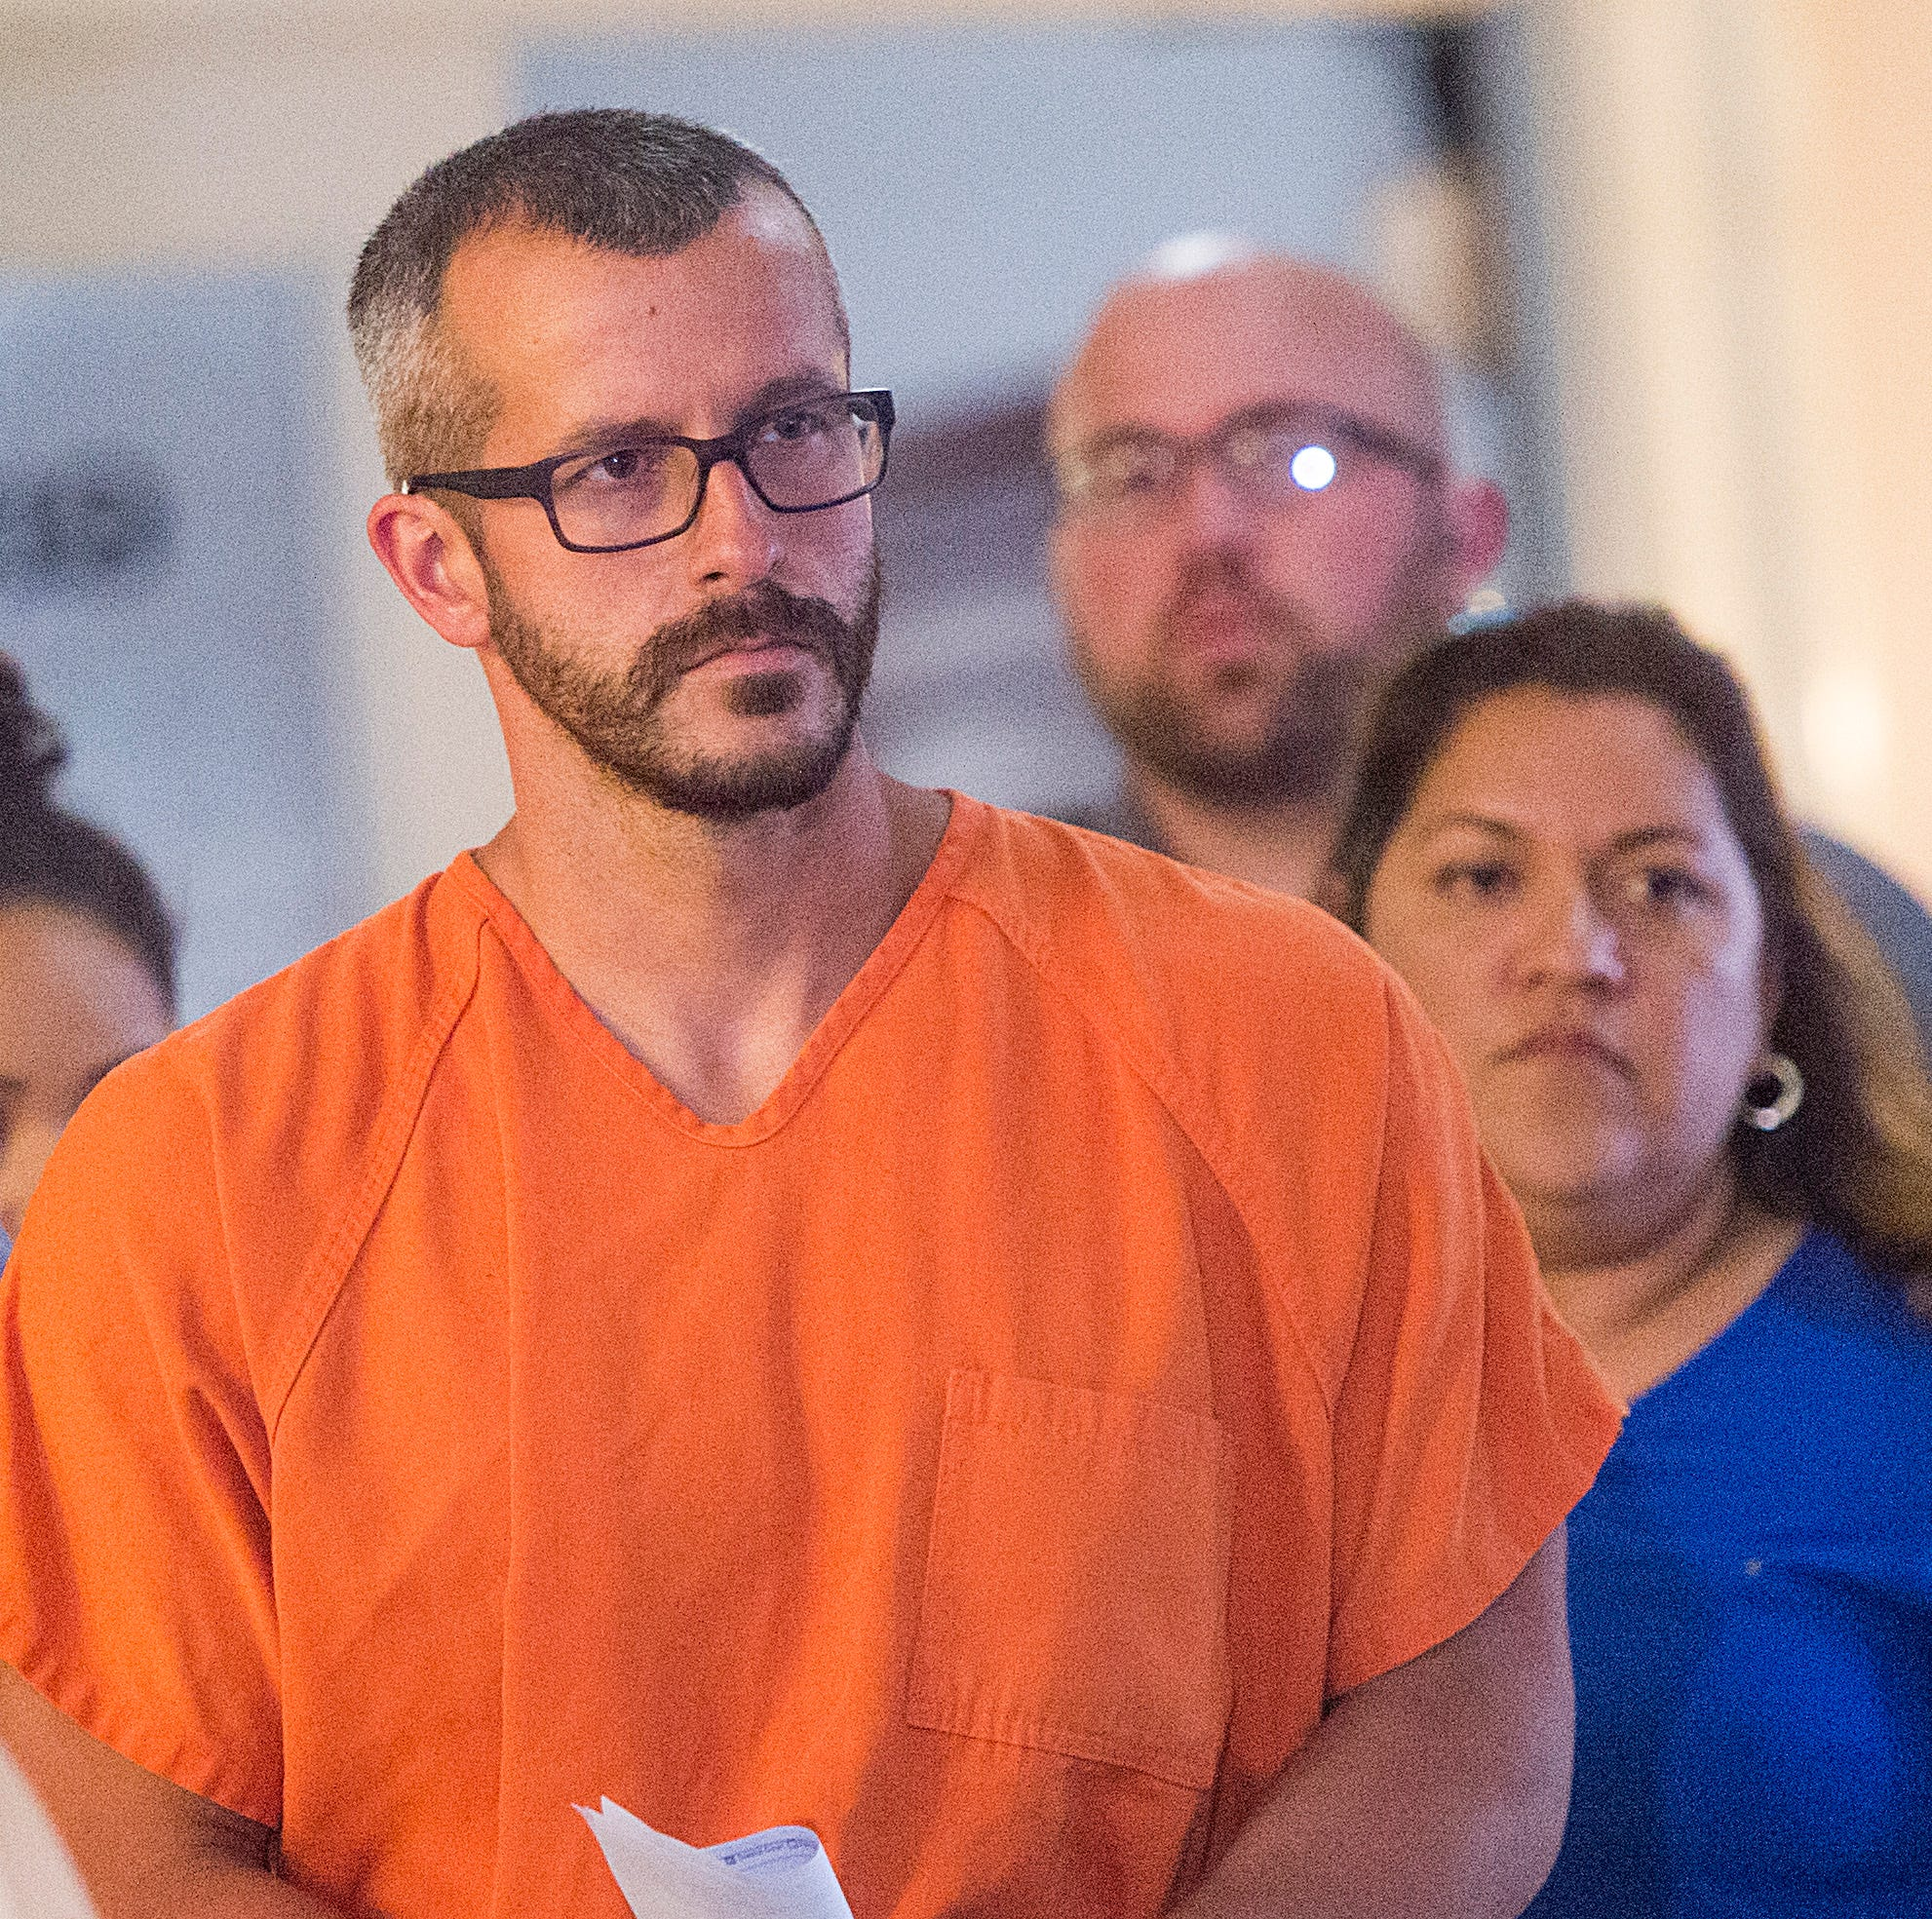 Watch live: Sentencing hearing for Chris Watts for murder of Shanann Watts, daughters